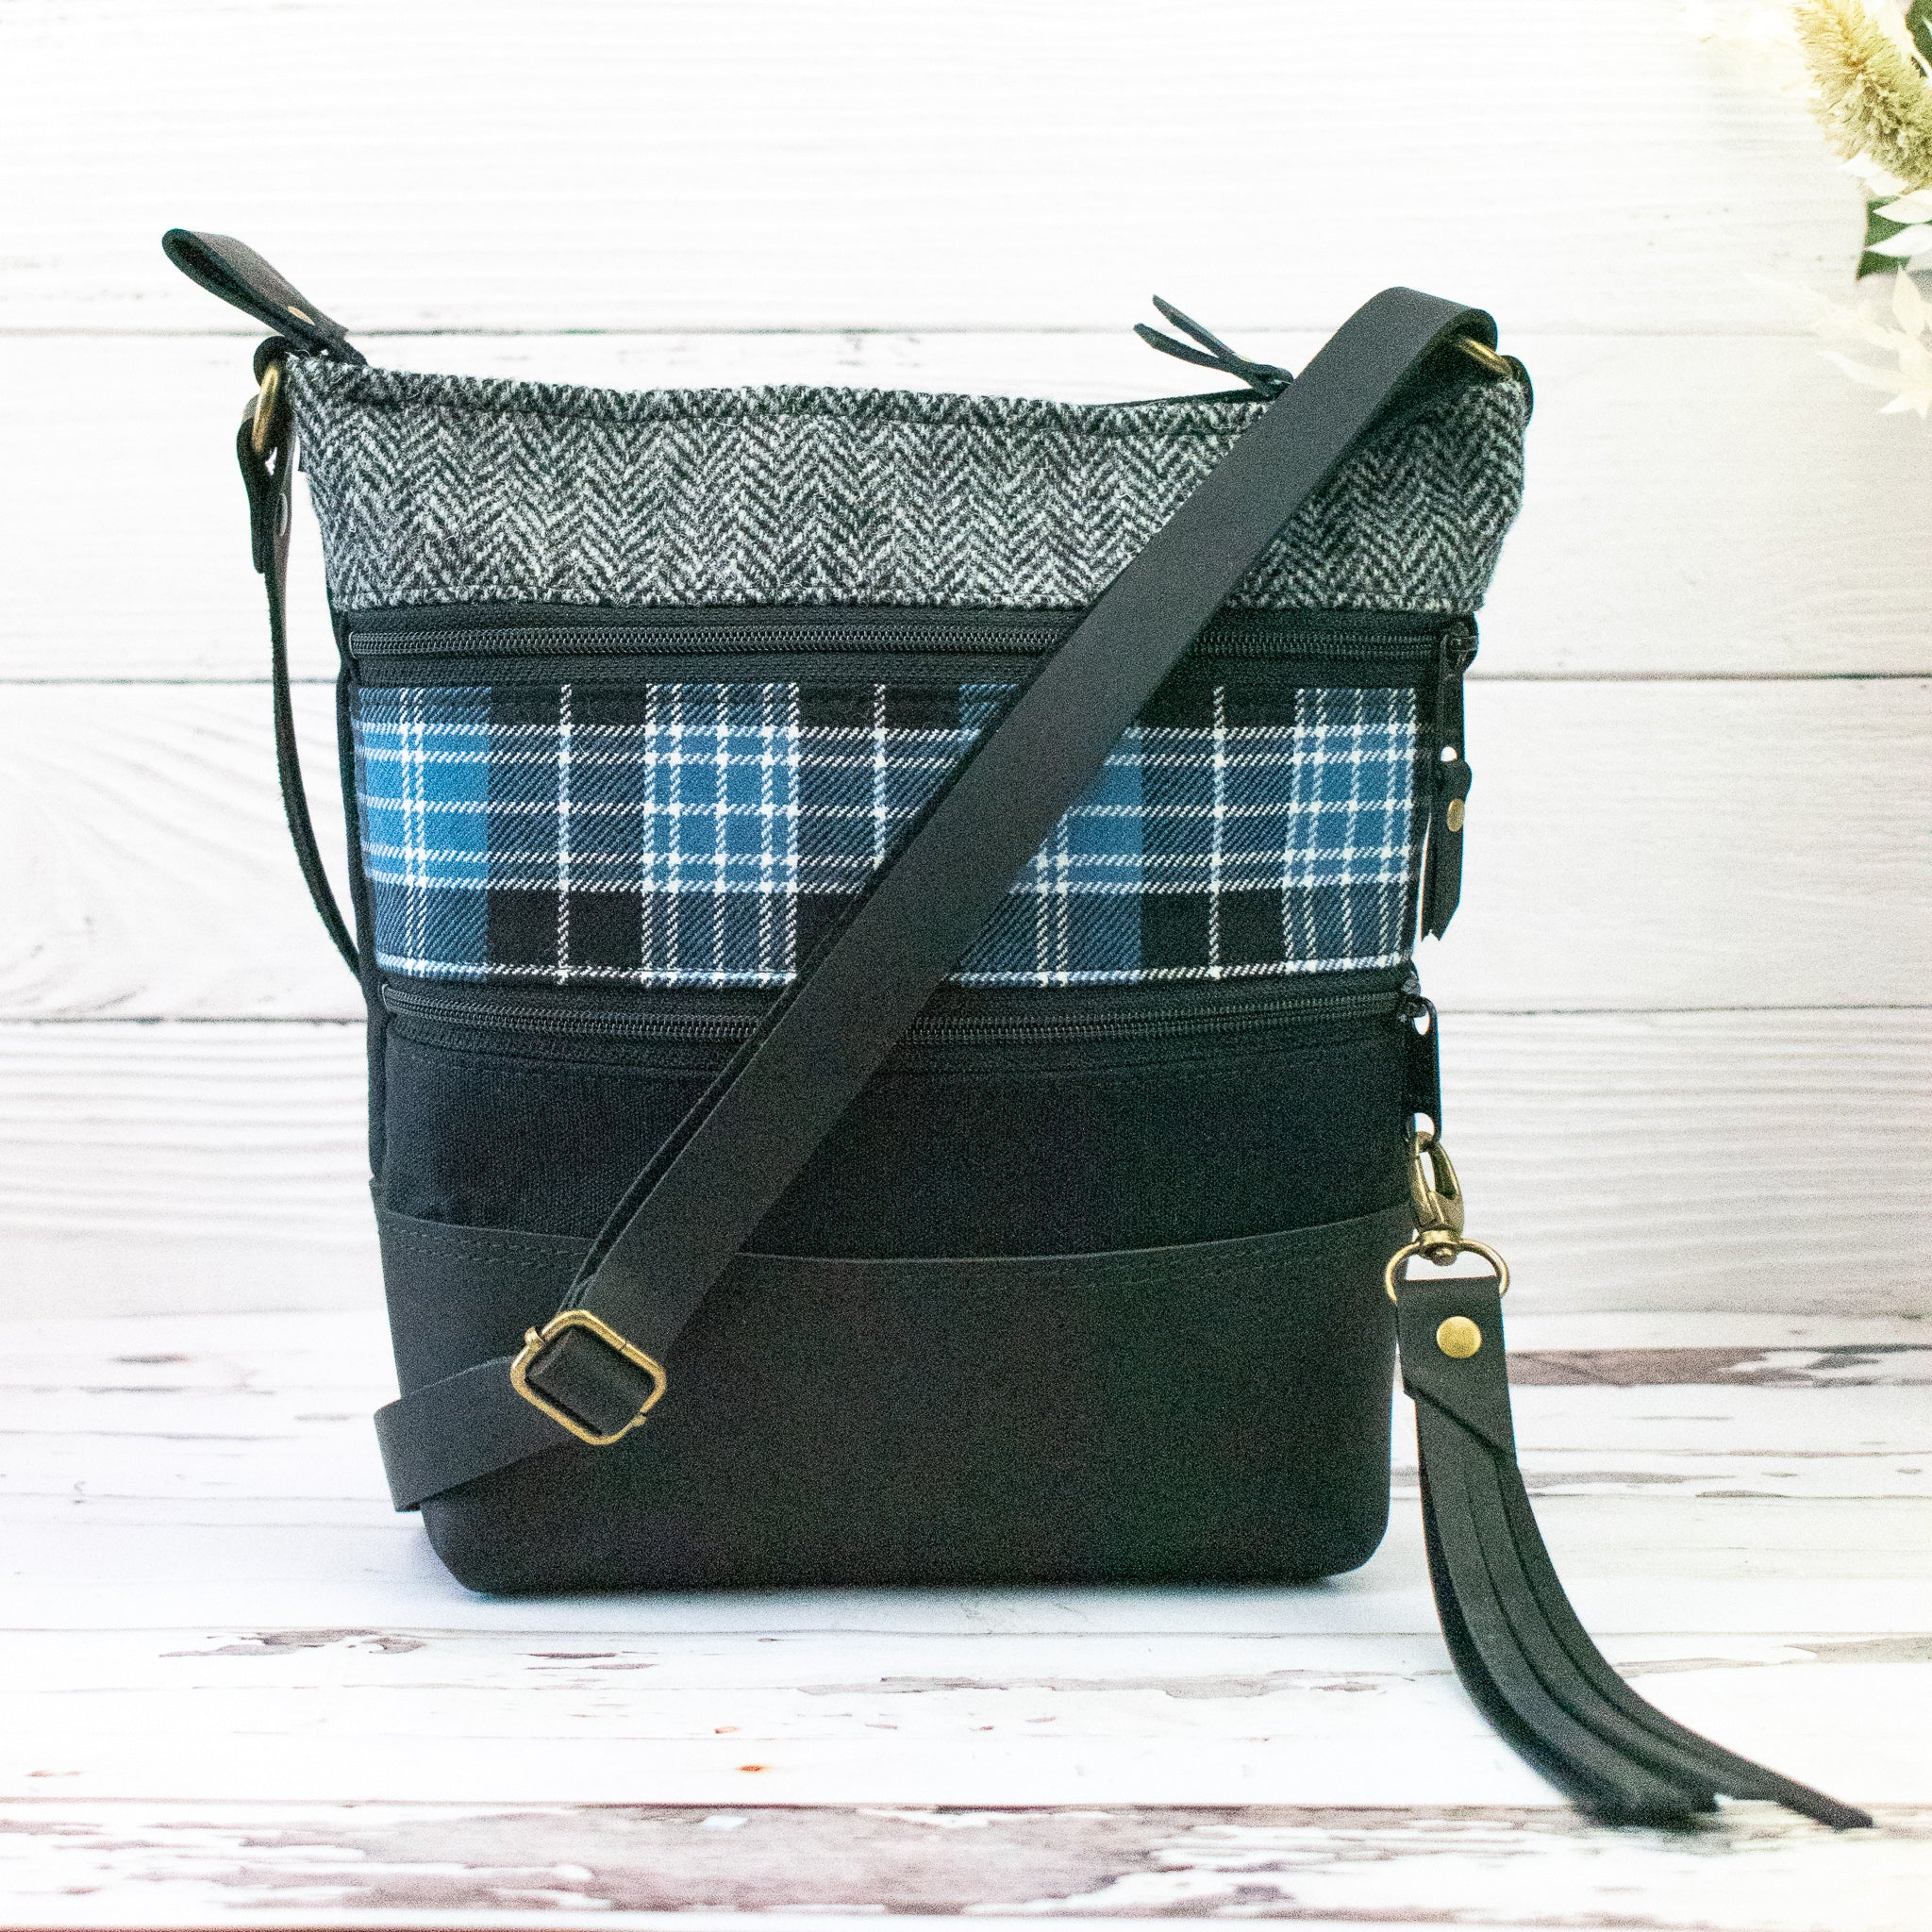 Tweed and Tartan Crossbody Bag - The Clark